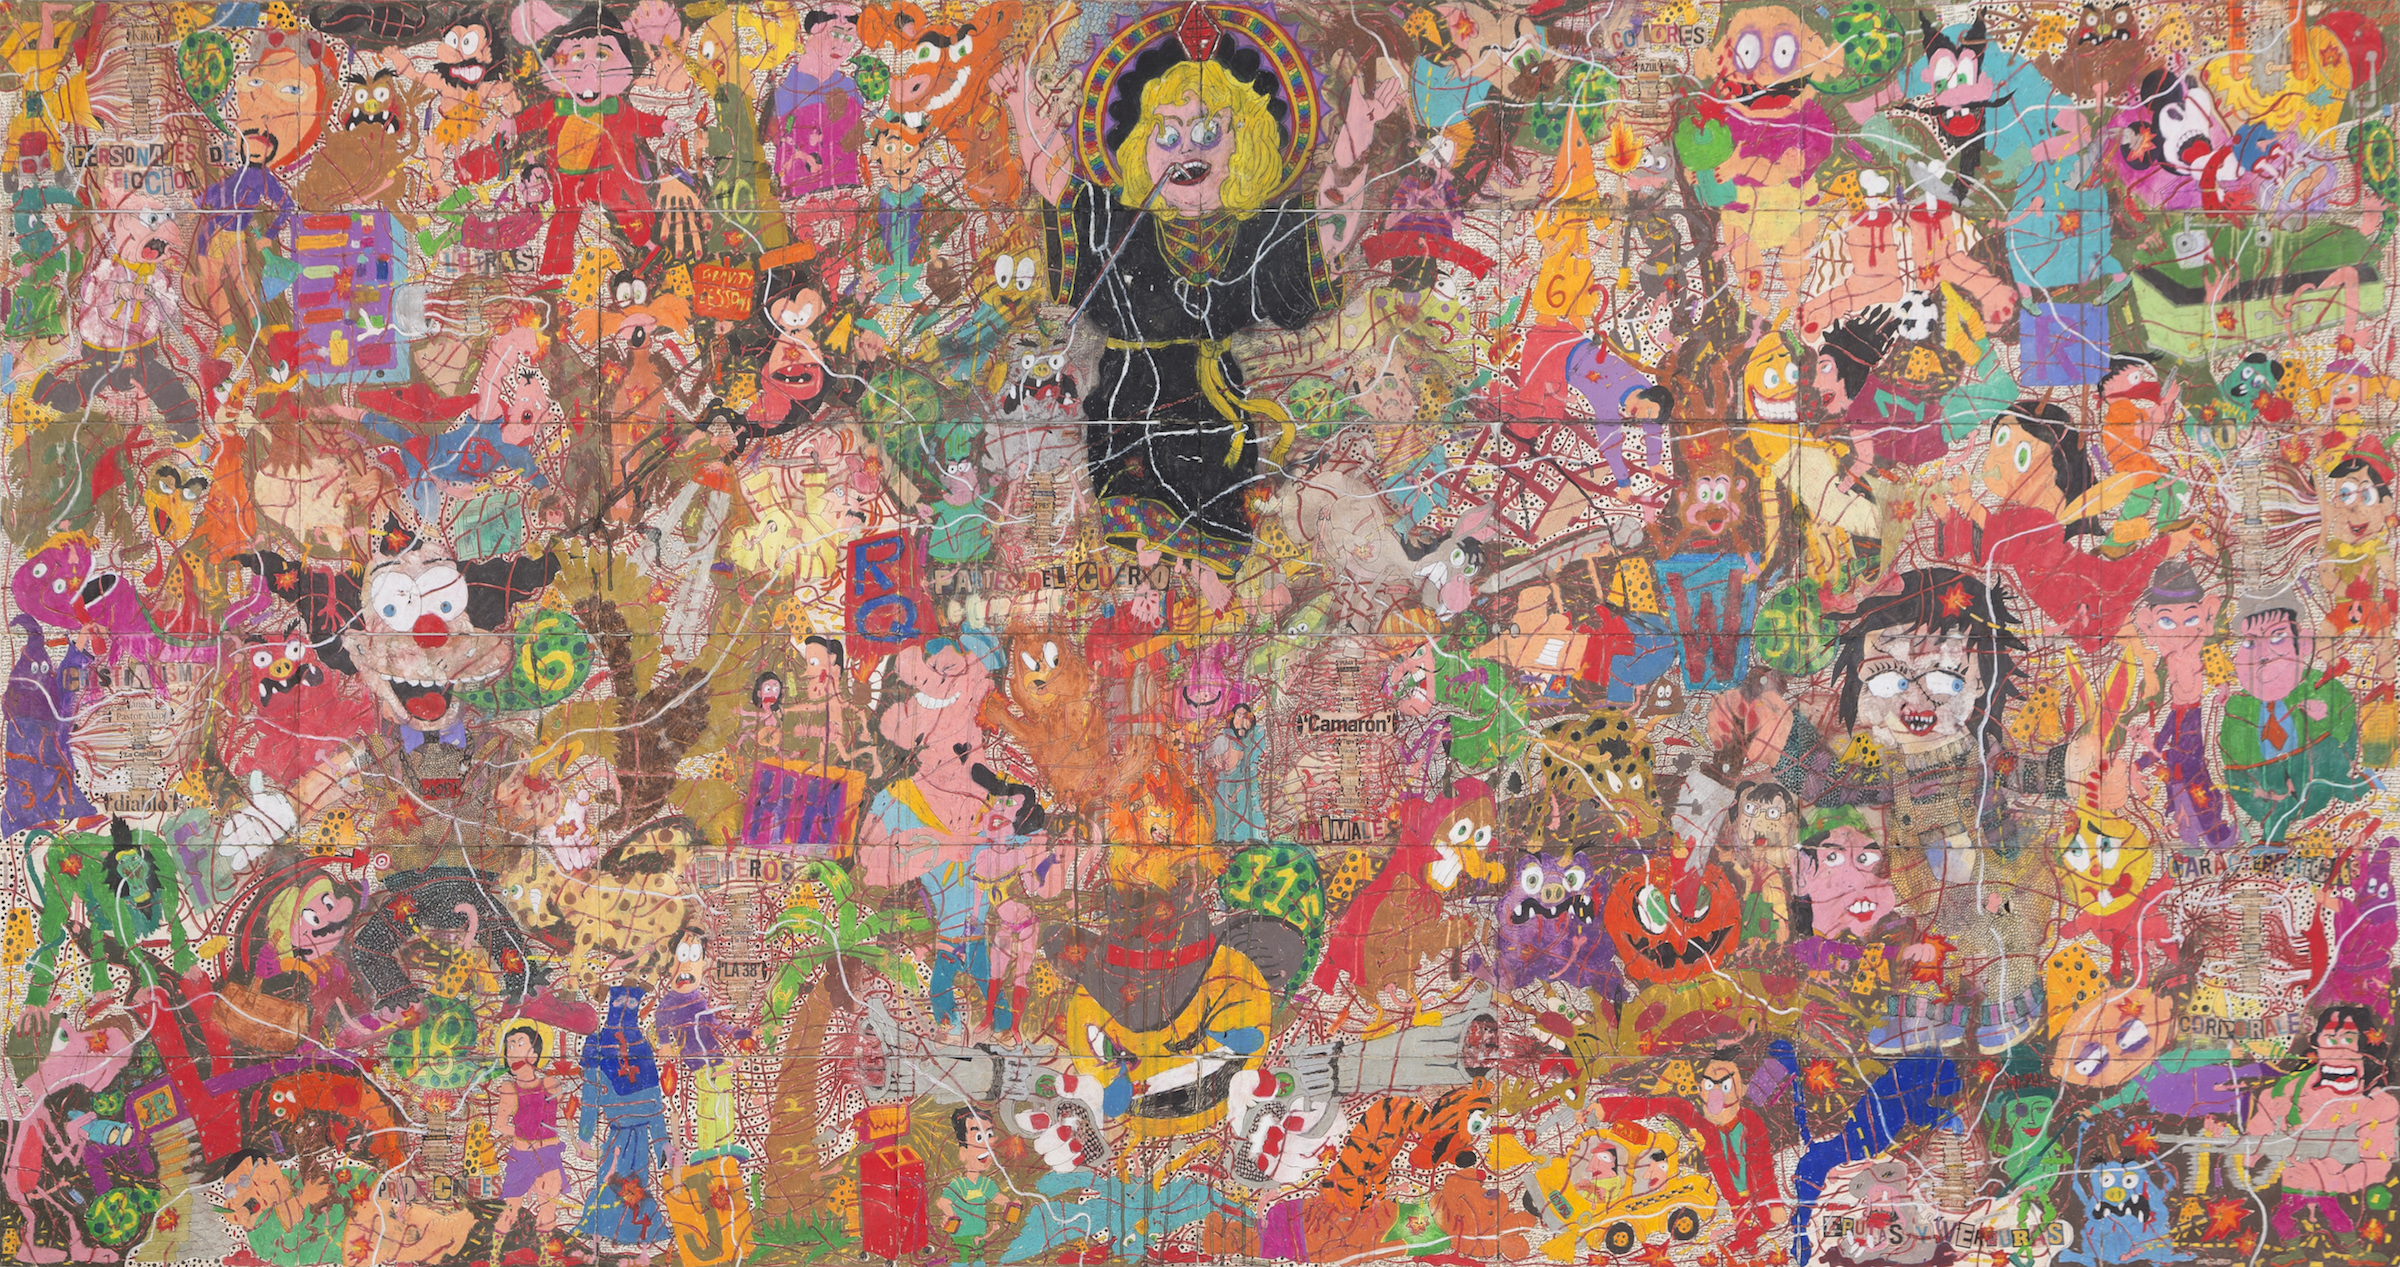 Camilo Restrepo. <em>A Land Reform 15</em>, 2017. Ink, water-soluble wax pastel, tape, stickers, newspaper clippings, glue and saliva on paper, 45 3/4 x 94 inches (116.3 x 238.8 cm)